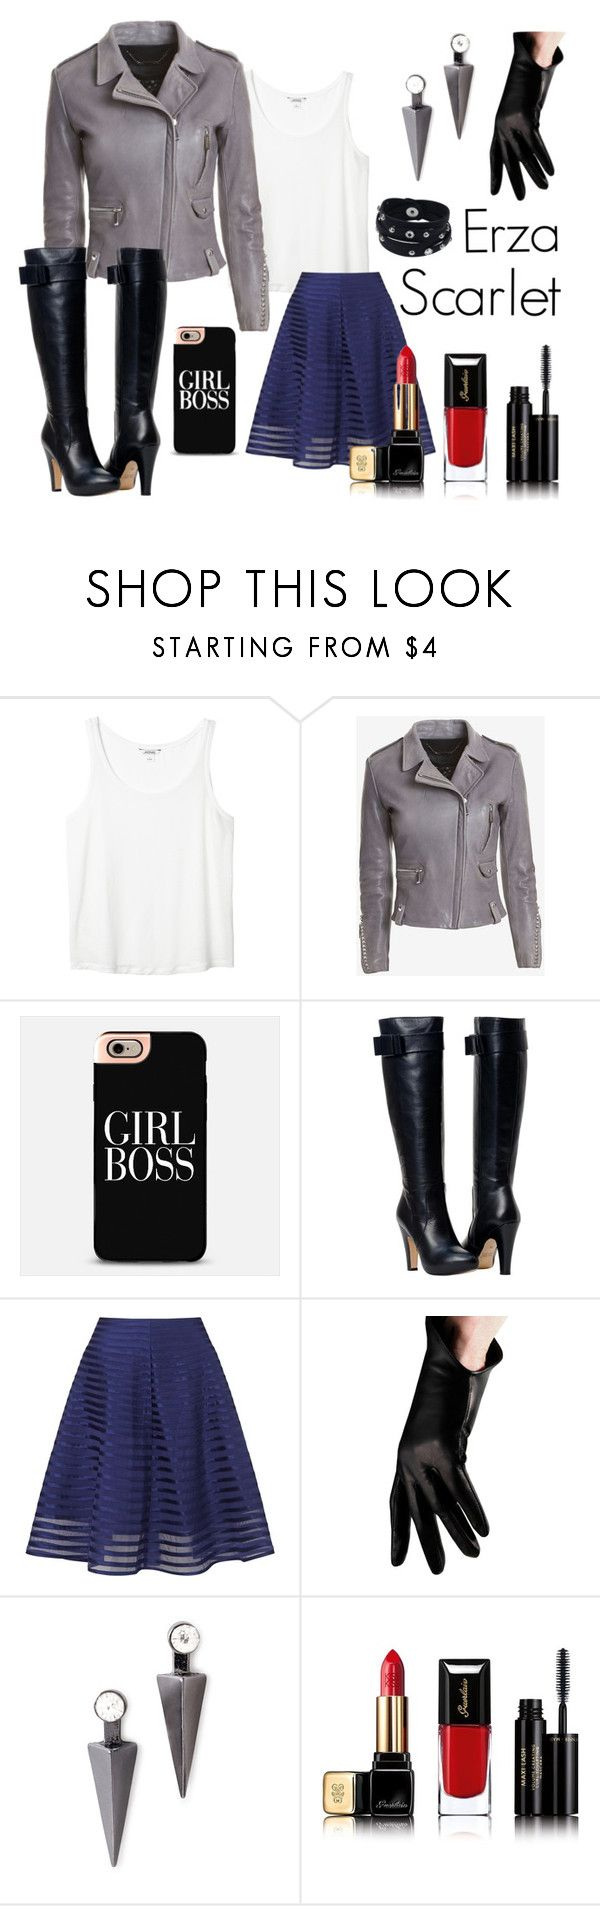 """Erza Scarlet"" by evxl ❤ liked on Polyvore featuring Monki, Barbara Bui, BOSS Black, Somerset by Alice Temperley, Urstadt.Swan, Forever 21, Guerlain, Vance Co., red and Leather"